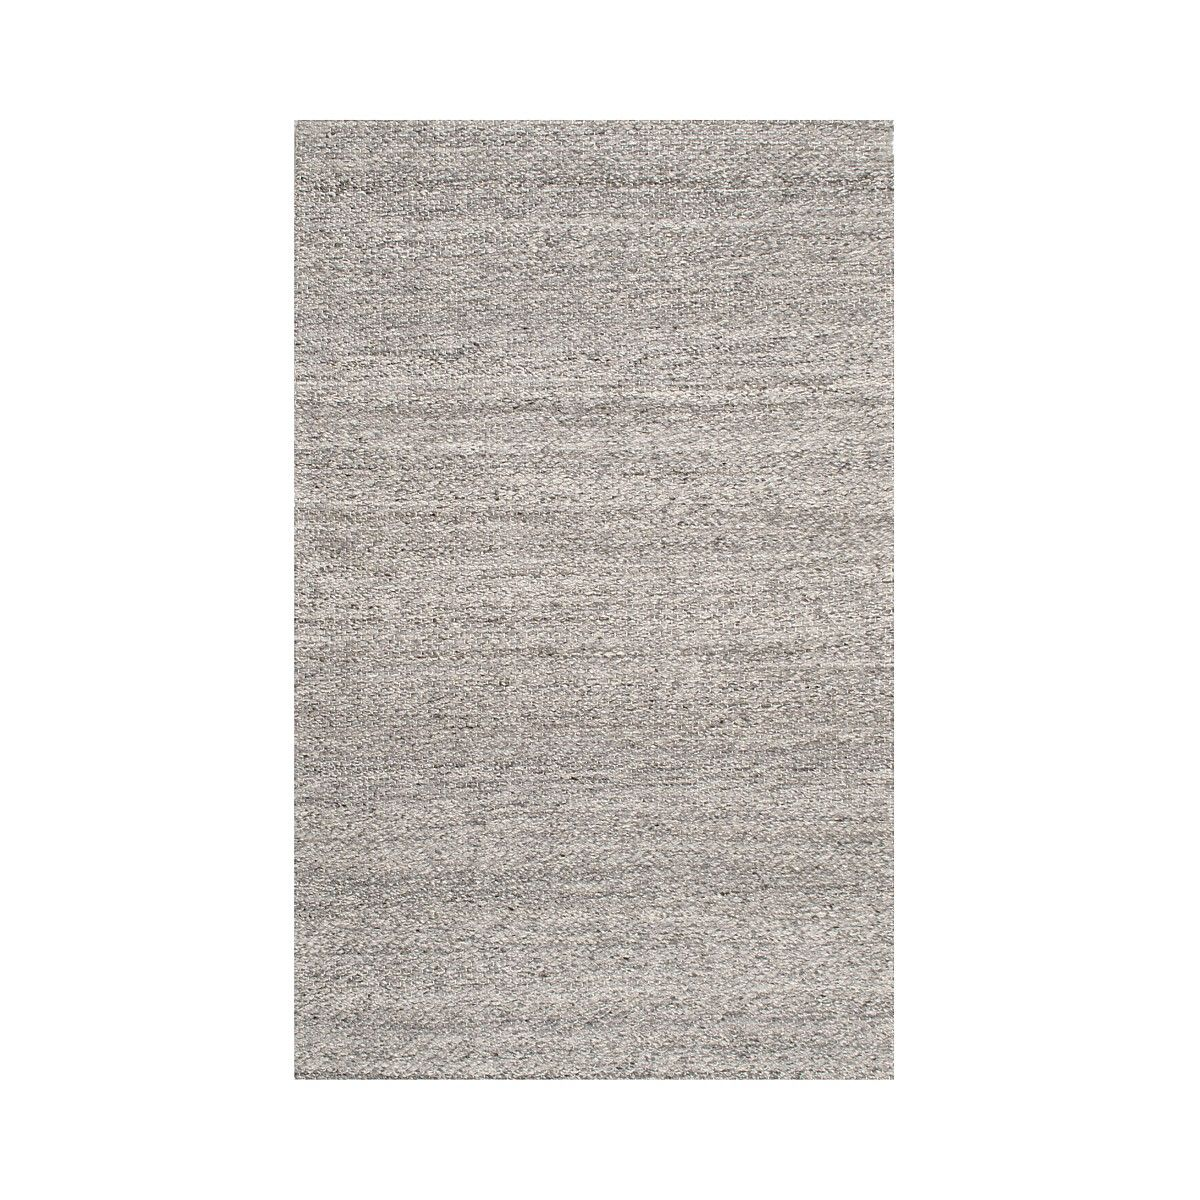 Mitchell Gold Bob Williams Quinn Area Rugs Bloomingdale S Rugs